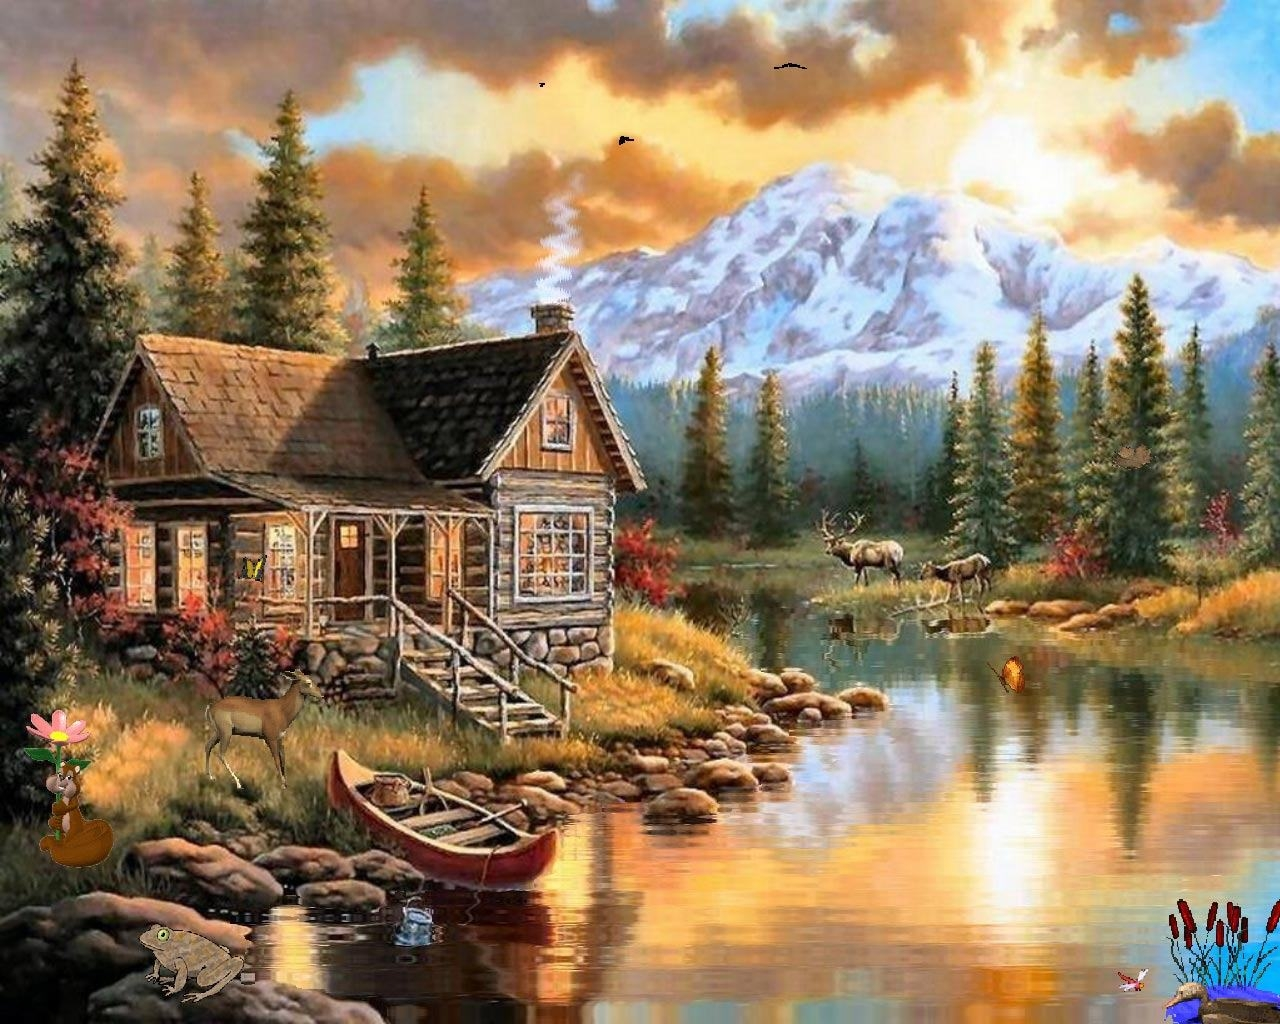 Drawn scenic natural scenery Wallpapers Backgrounds Drawing Natural Host2post